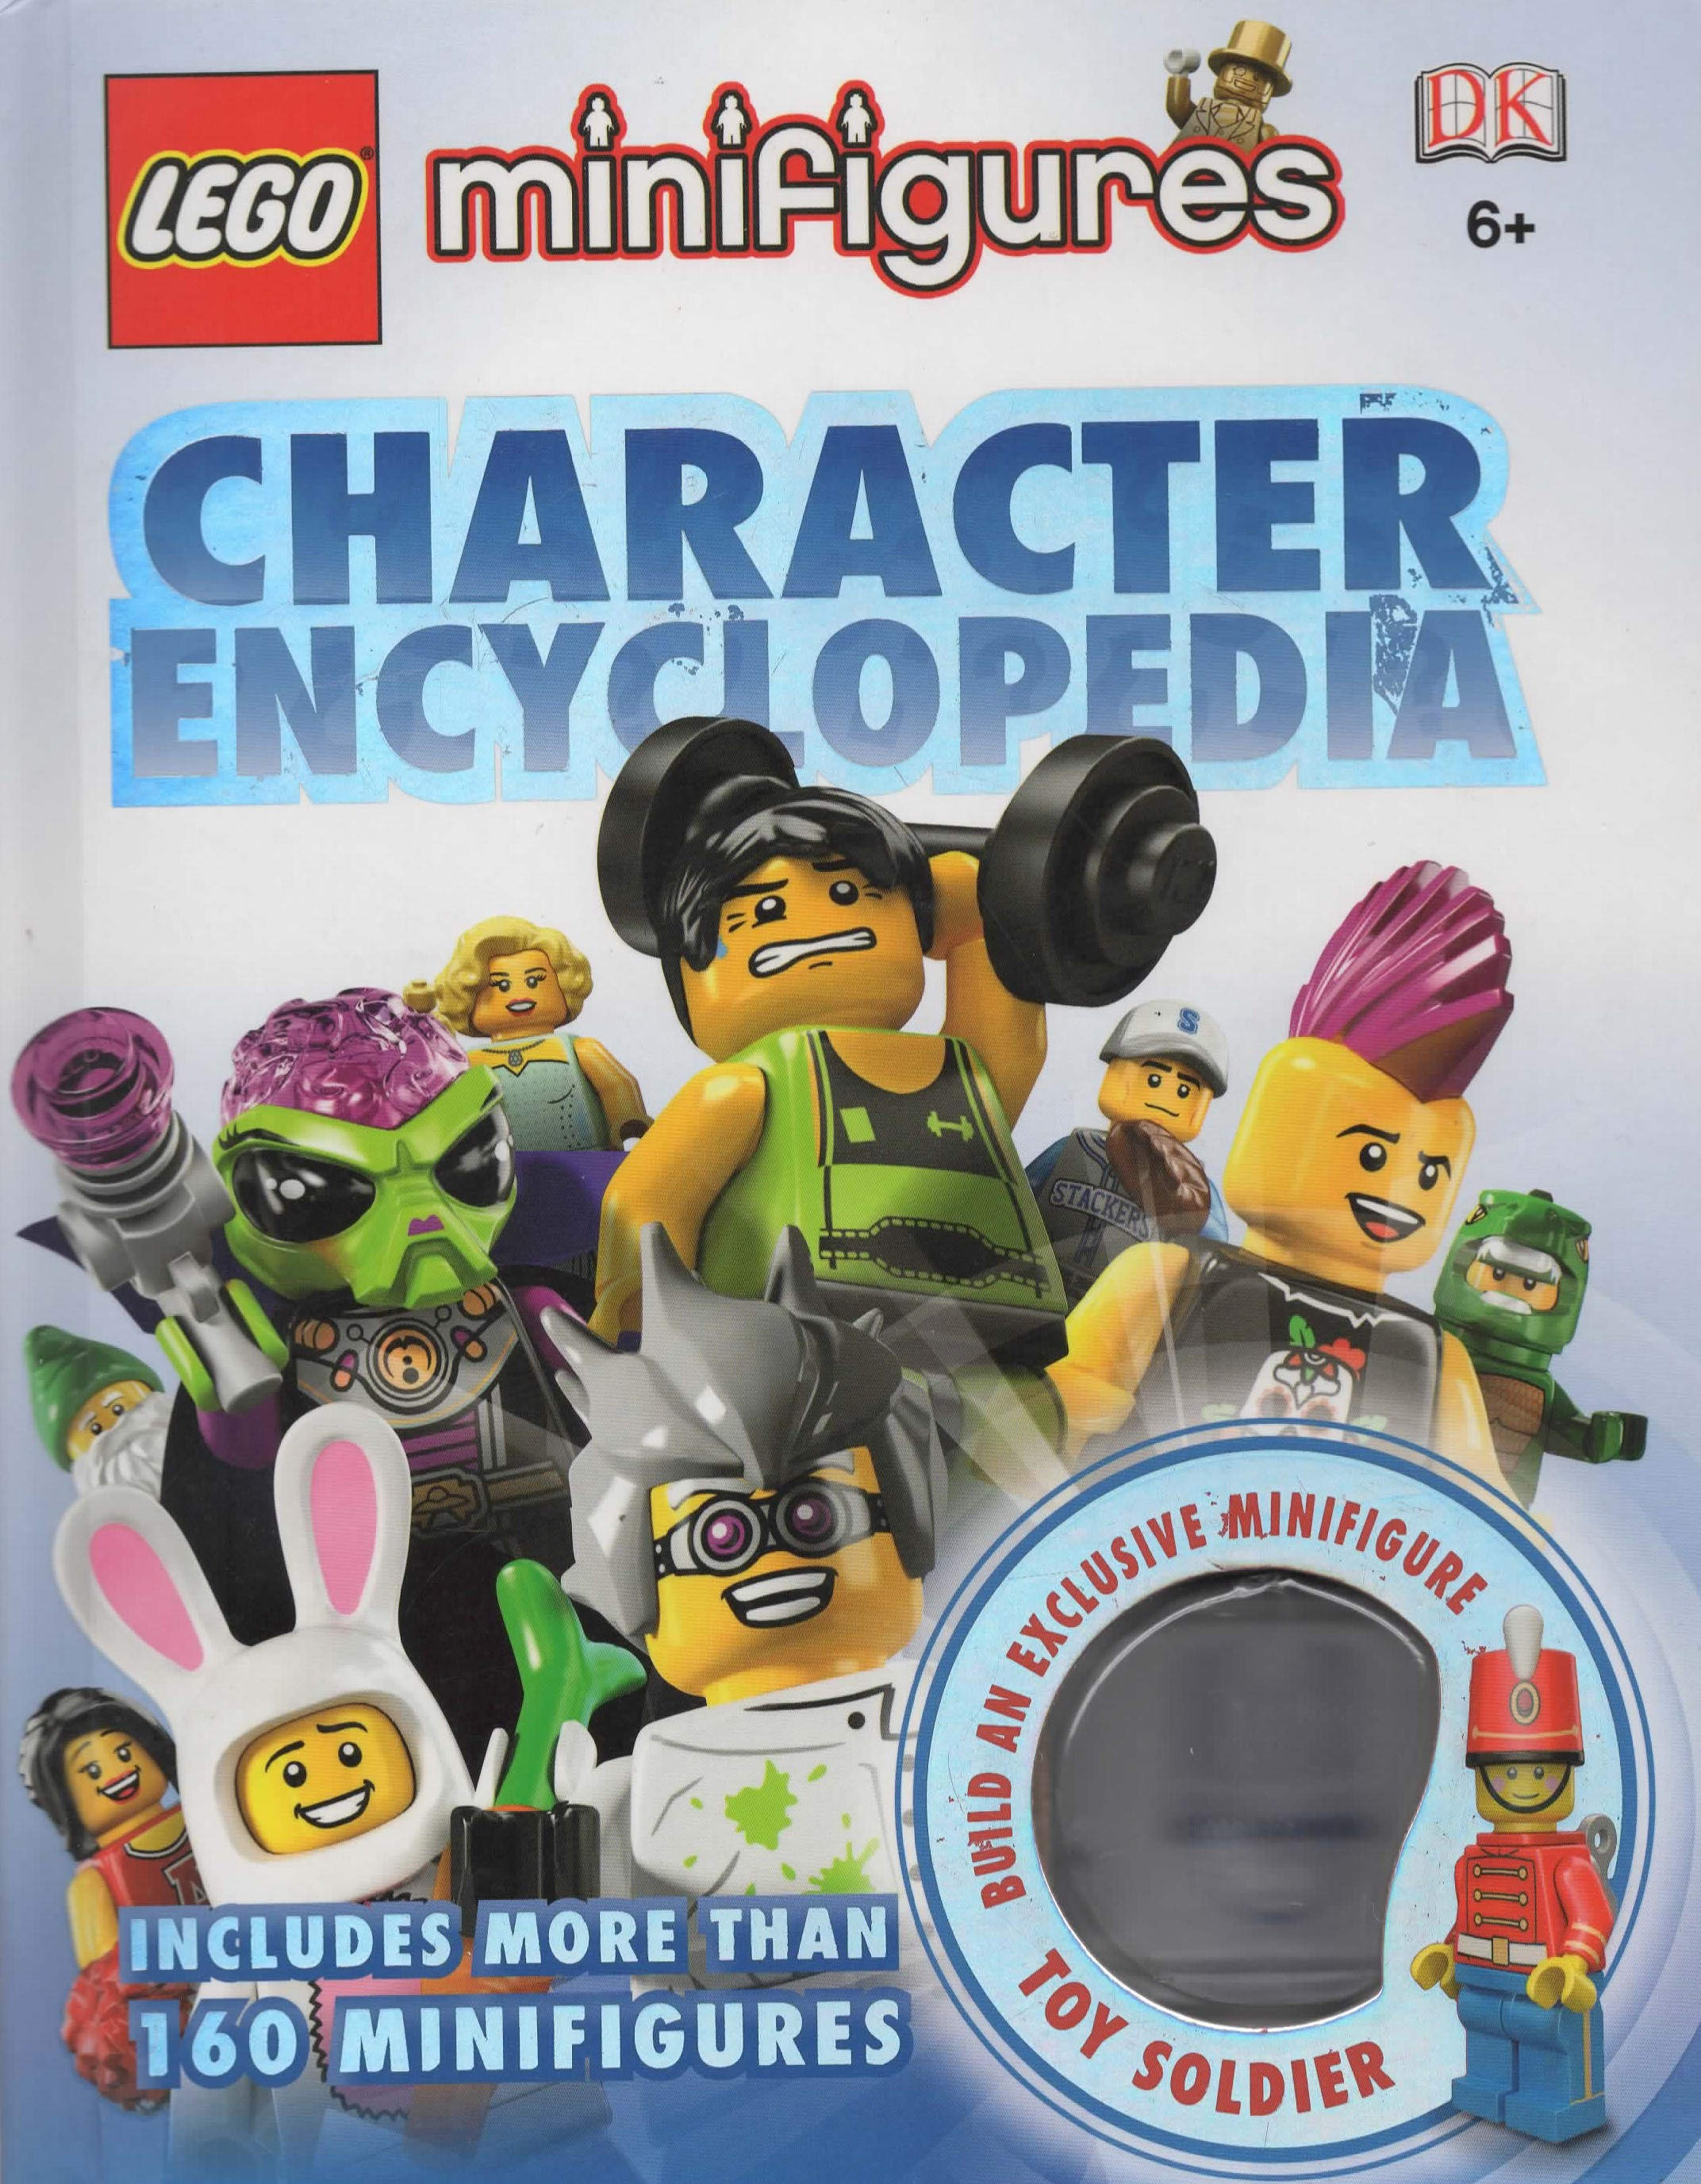 LEGO New City Scuba Diver Goggles Beach Minifigure with Lobster and Fish